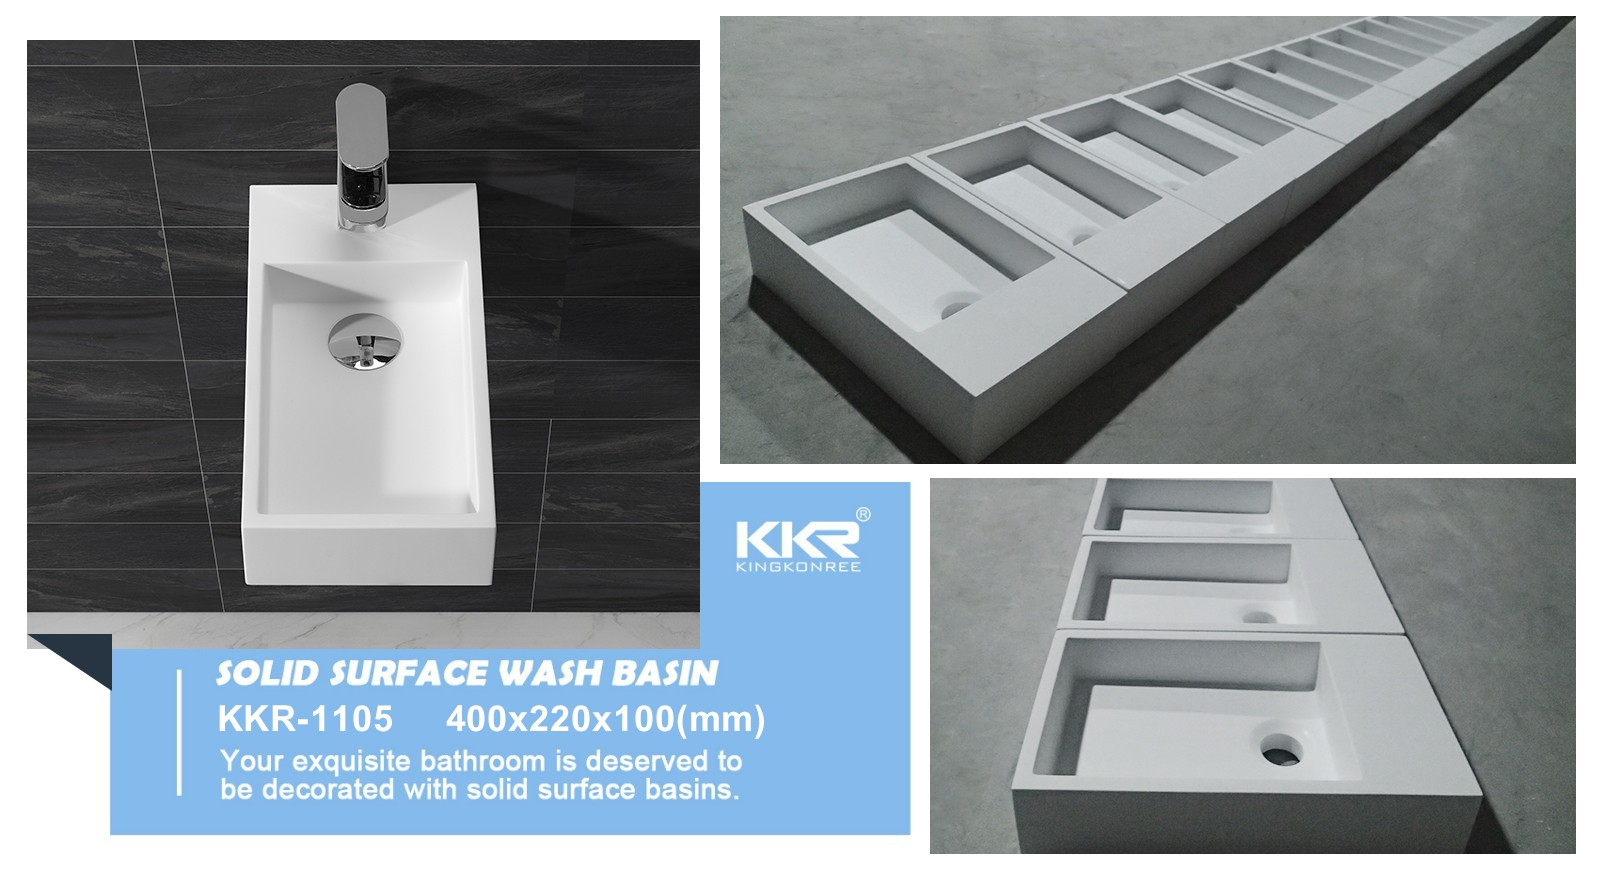 KKR Wholesale Small Size Wall Hung Solid Surface Basin KKR-1105-9